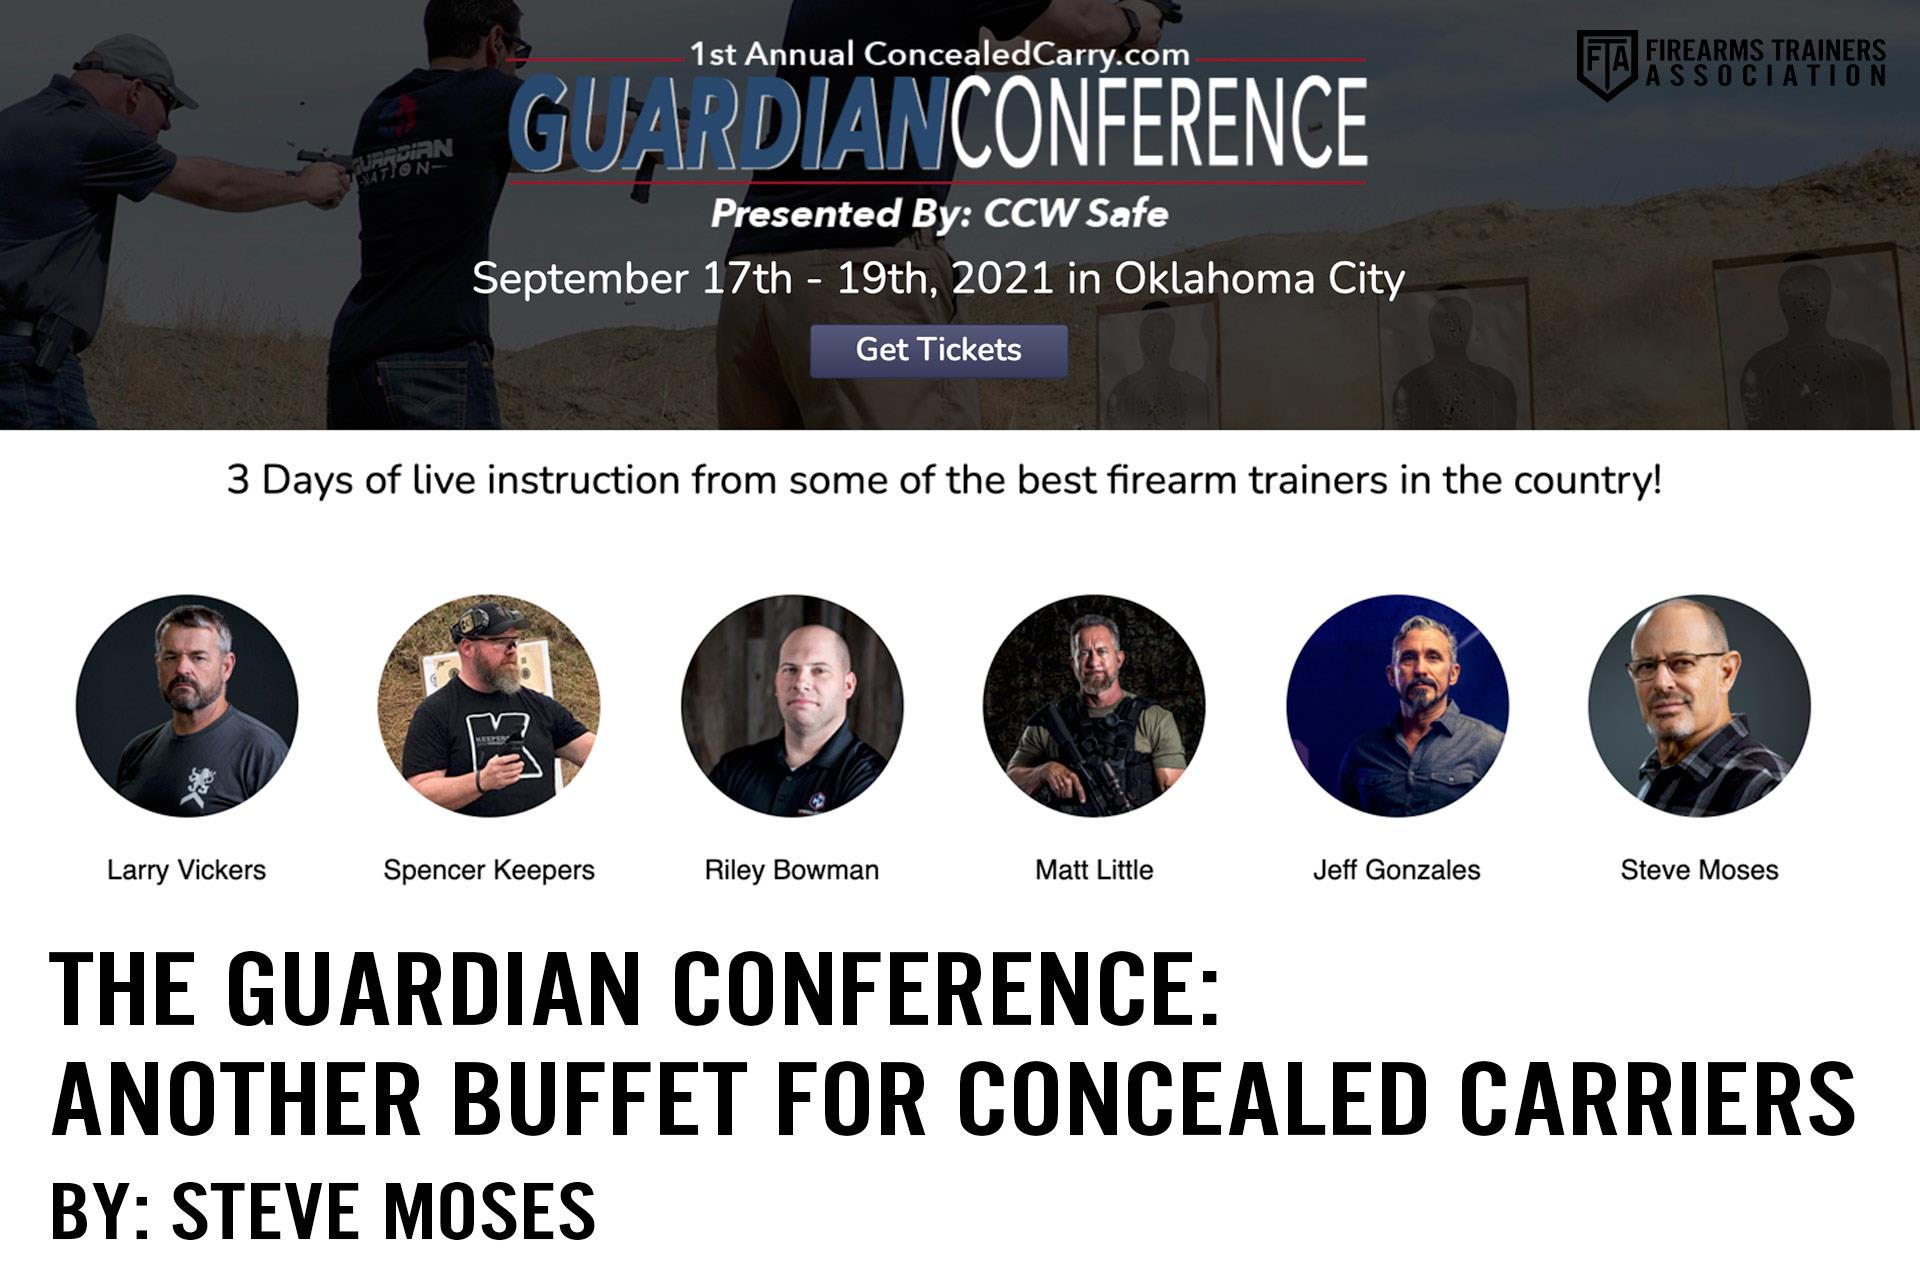 THE GUARDIAN CONFERENCE: ANOTHER BUFFET FOR CONCEALED CARRIERS